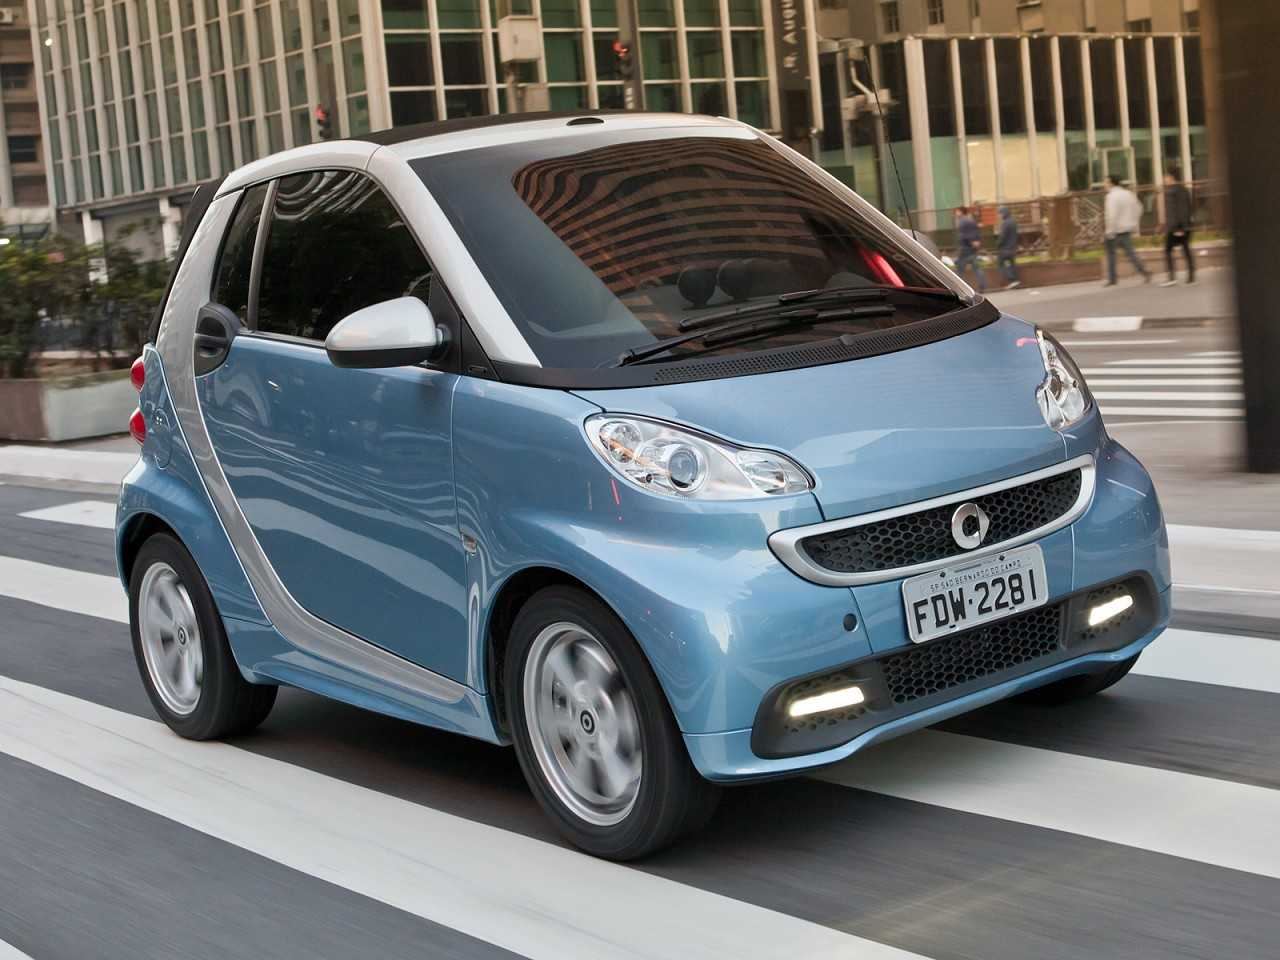 Smart ForTwo 2013 - ângulo frontal